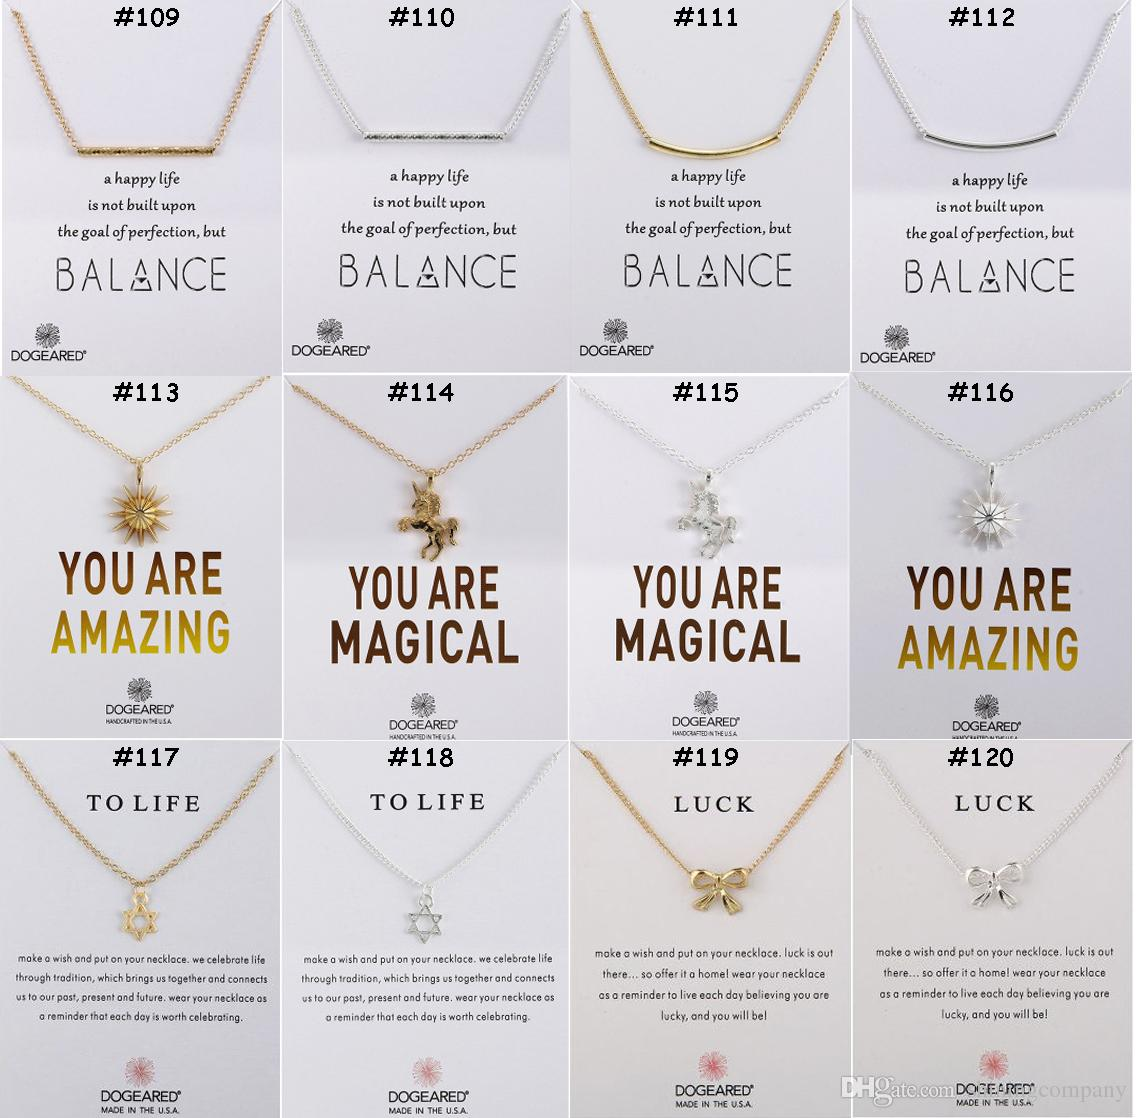 136 Designs Dogeared Jewelry Chokers Necklaces With Card Gold Silver Plated Pendant Necklace Little Gift for Friends Families Promotion Gift